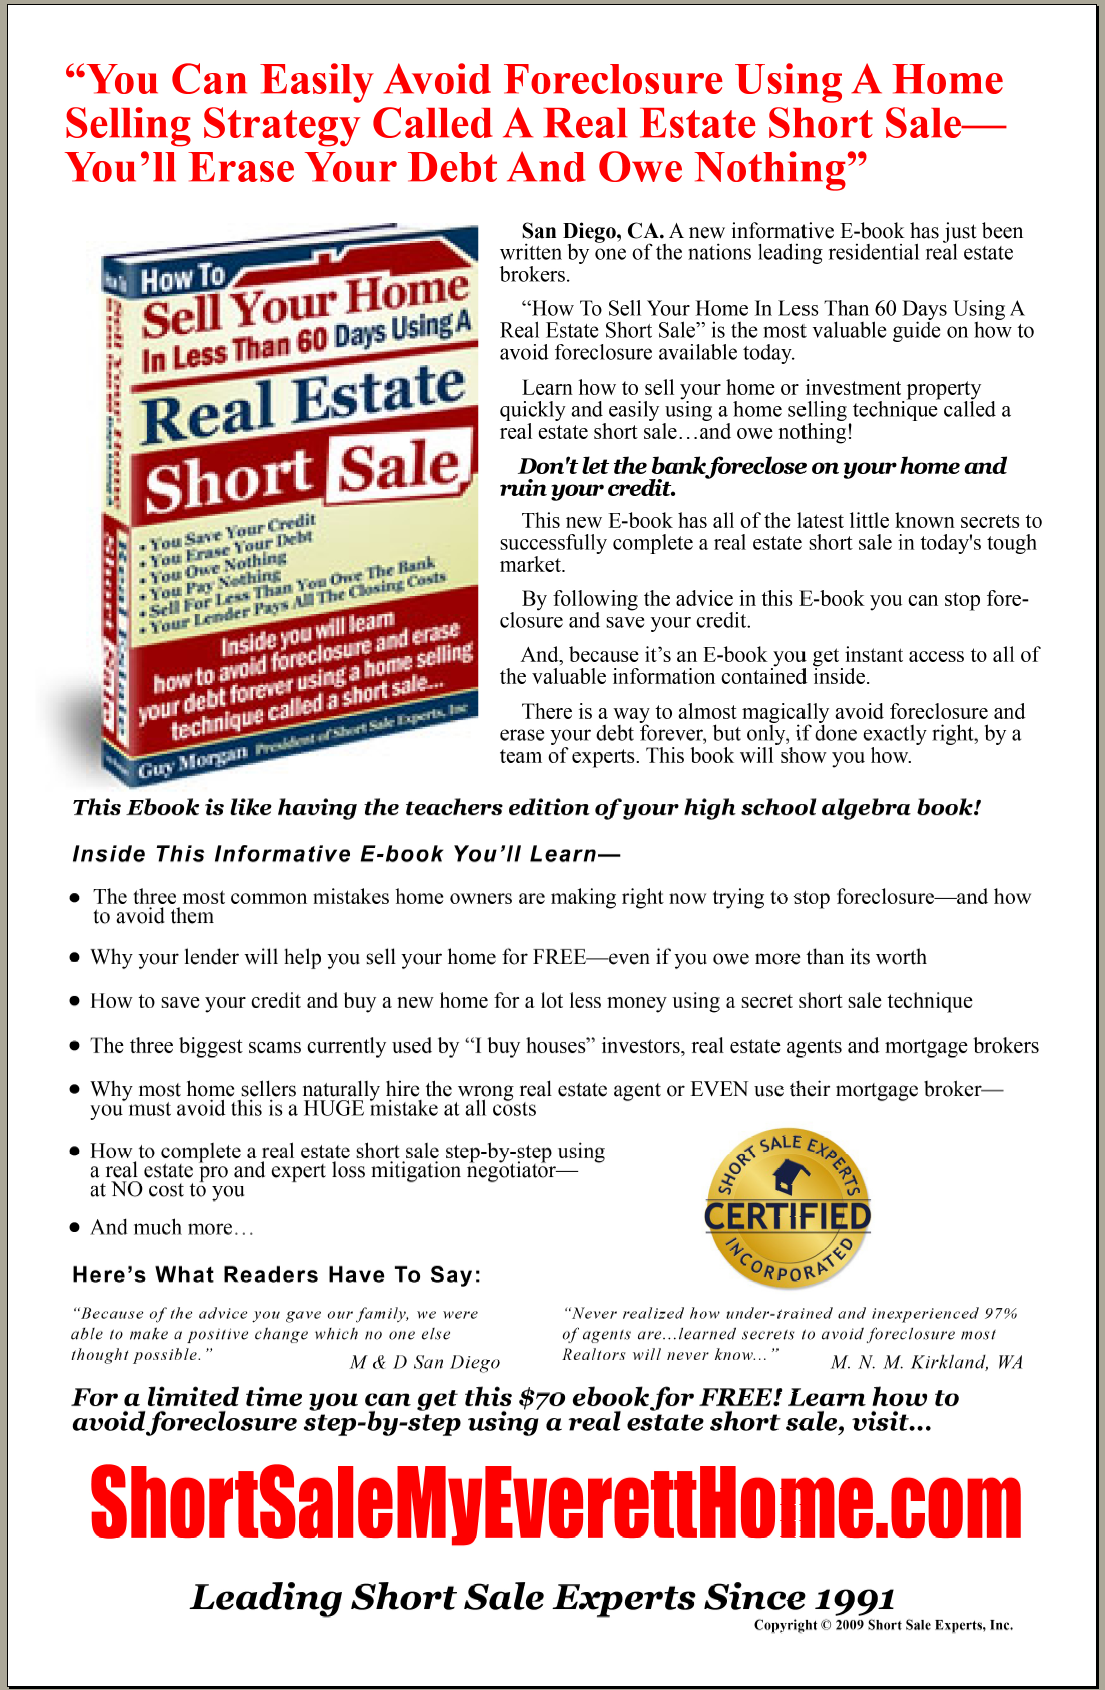 Short Sale Marketing